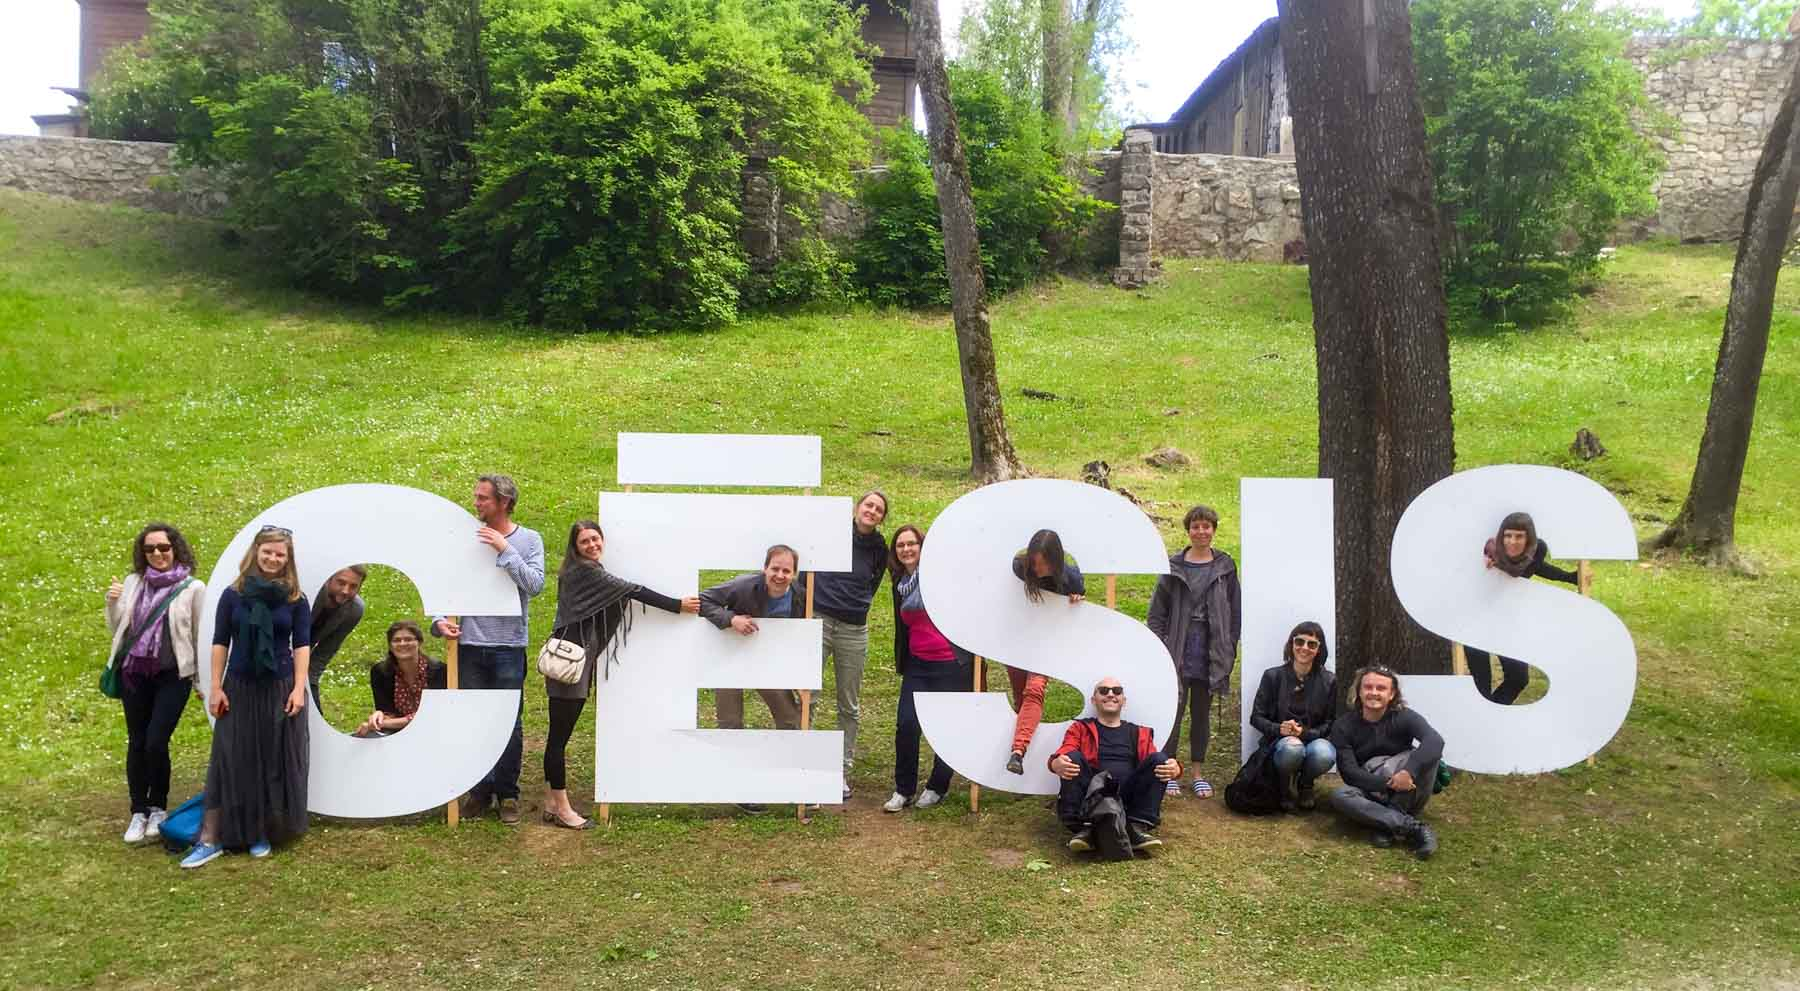 Cesis, Latvia - NIFOB group